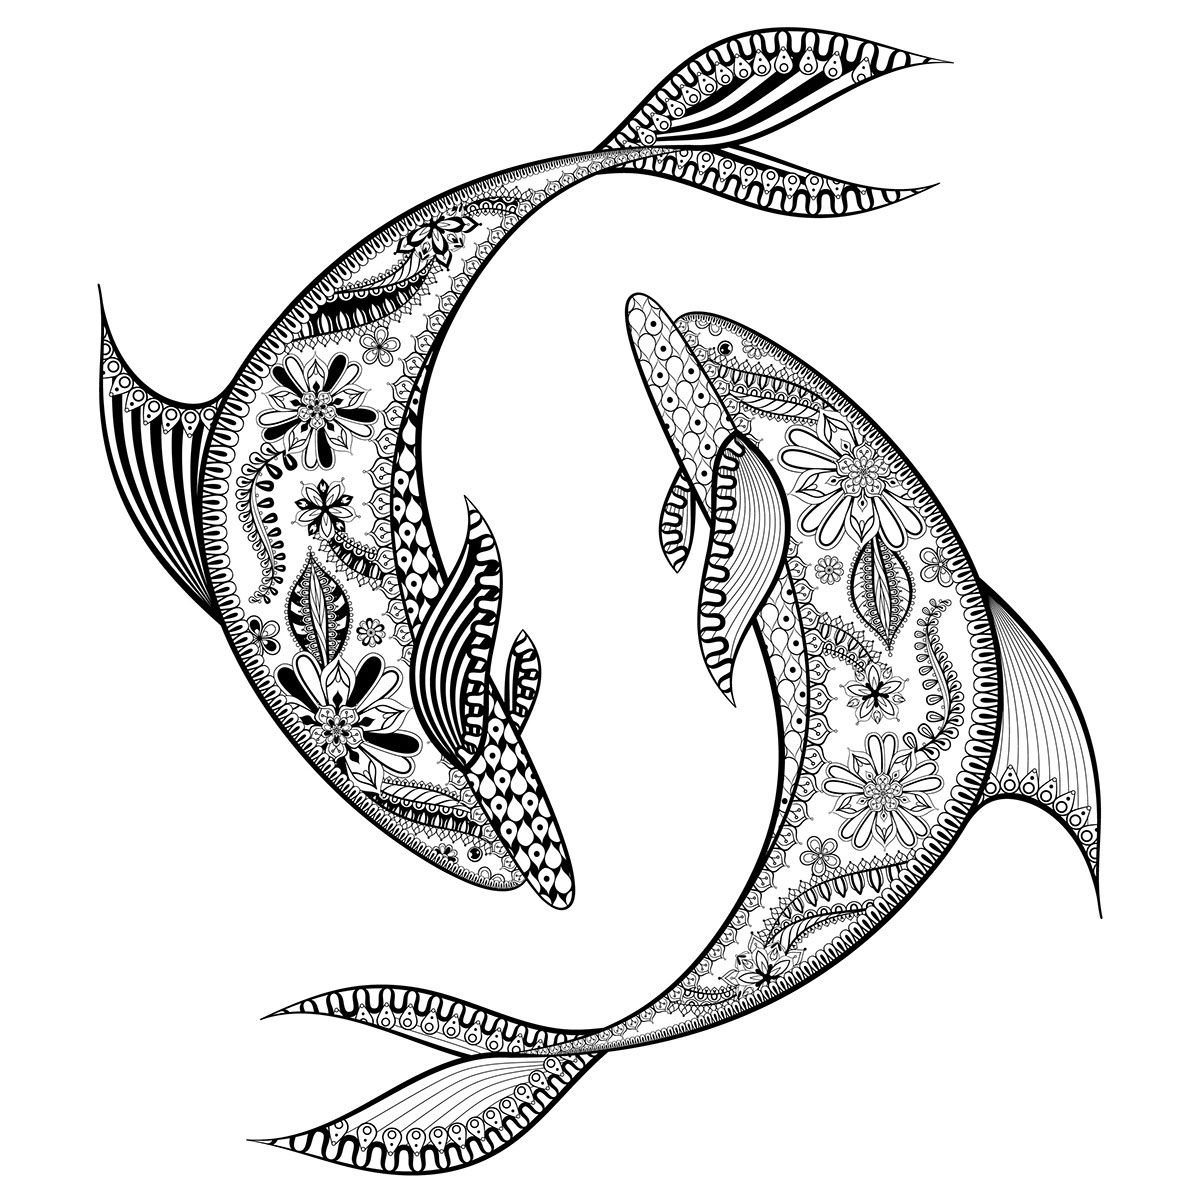 1200x1200 Trout Drawing Zentangle For Free Download